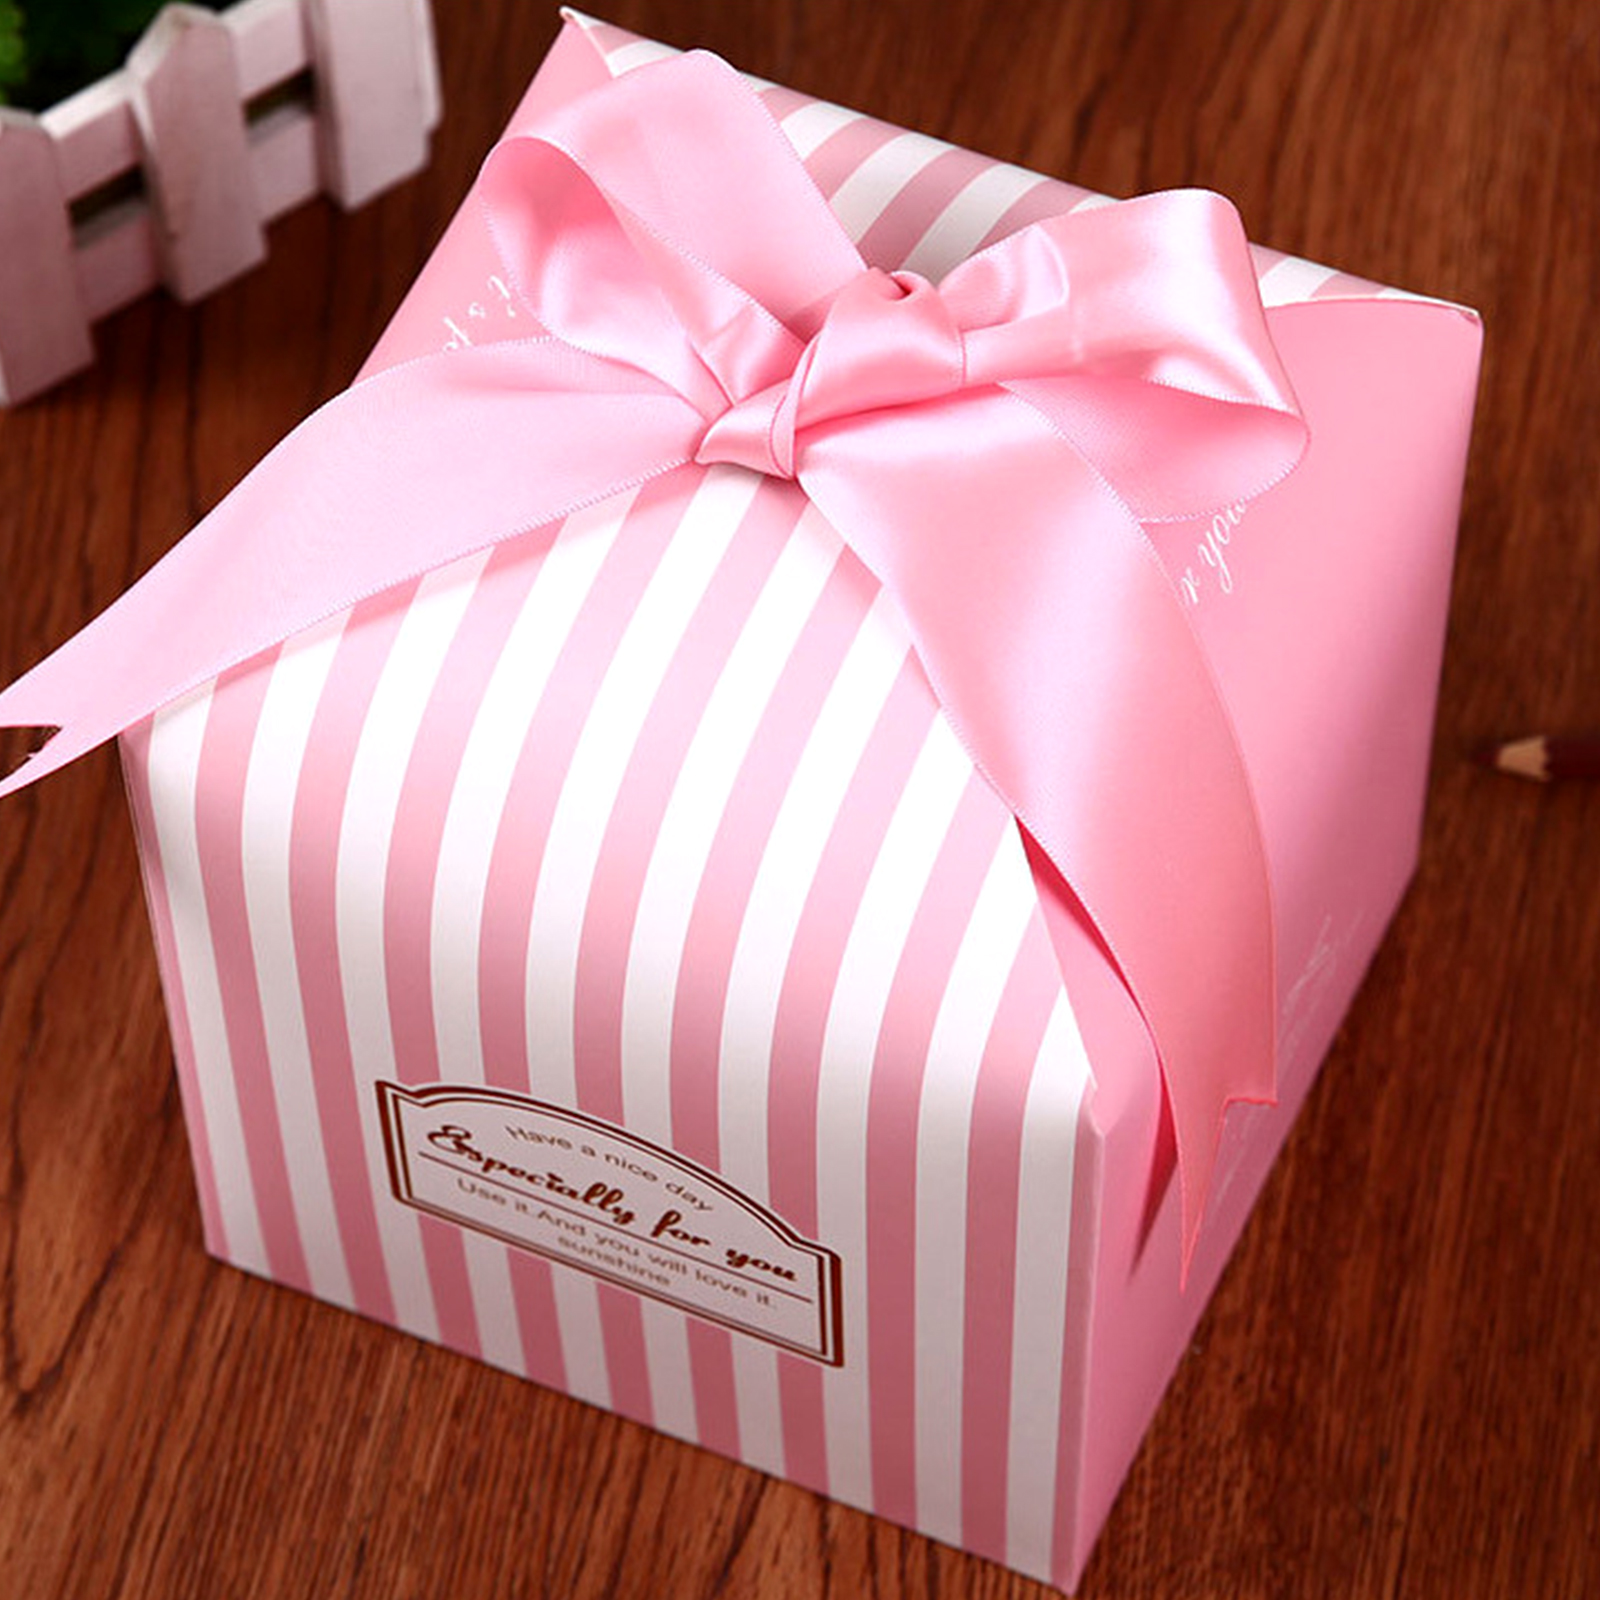 Wedding Flamingo Favors Candy Boxes Gift Box With Ribbons Baby Shower Wedding Birthday Party Supplies Goodie Bags